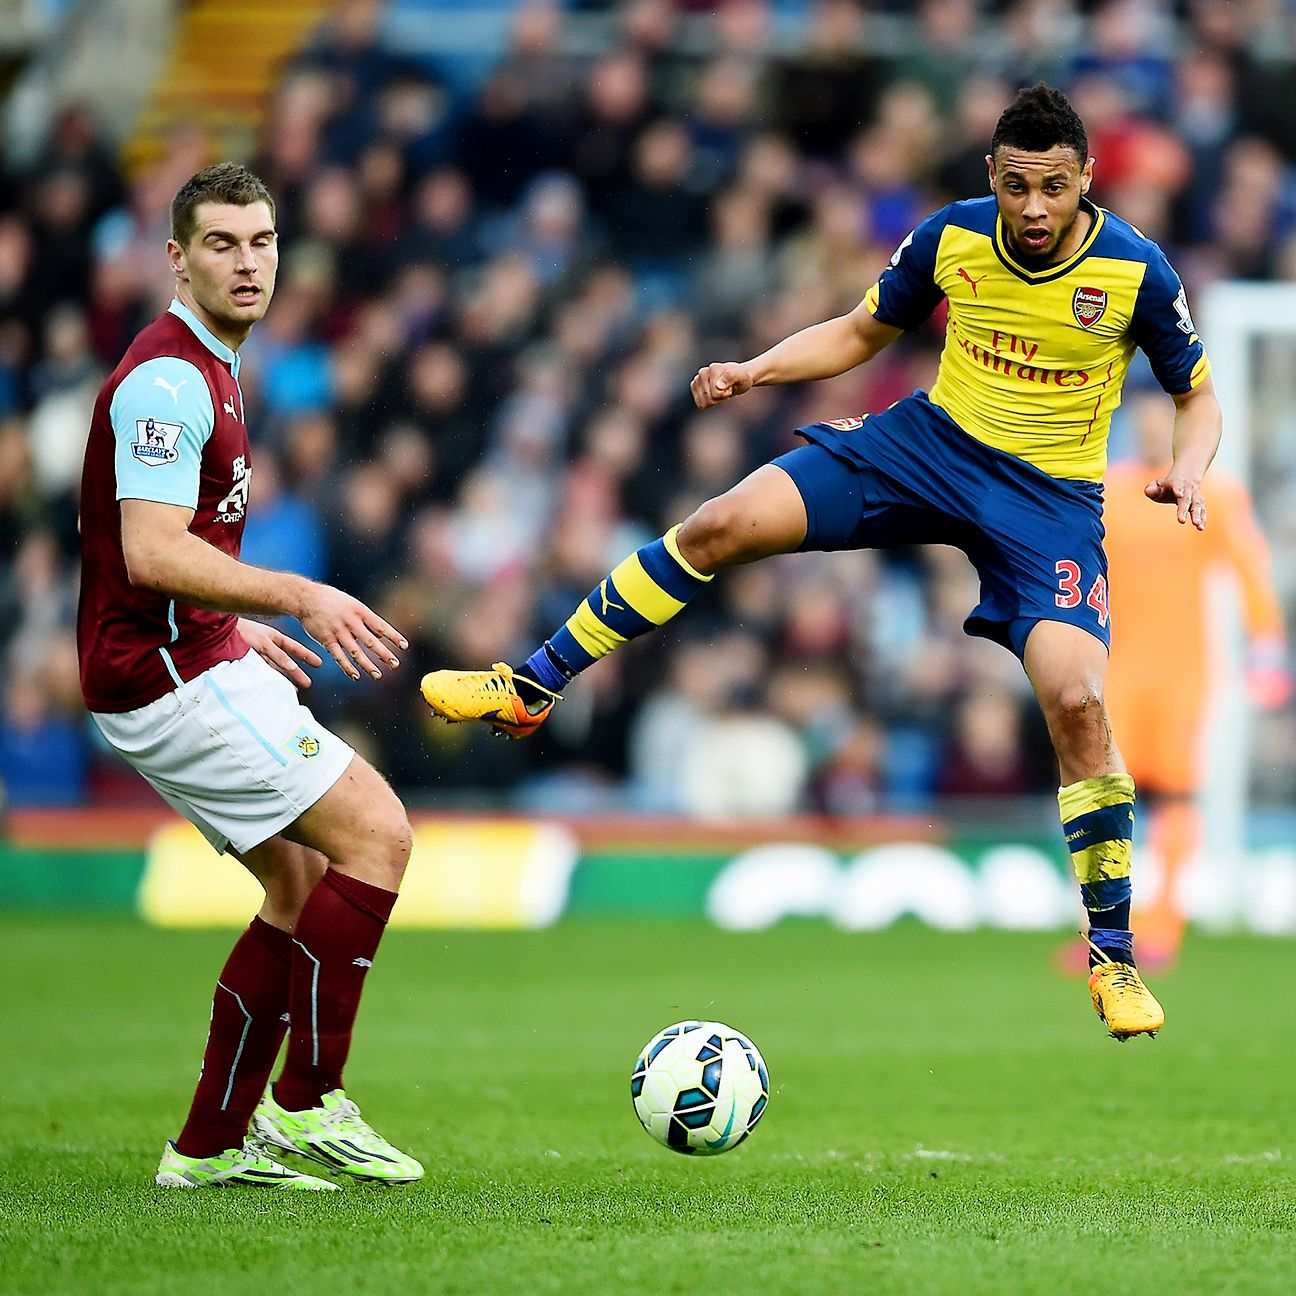 The space inhabited by Francis Coquelin was where Burnley's counterattacks went to die in Arsenal's 1-0 win at Turf Moor.